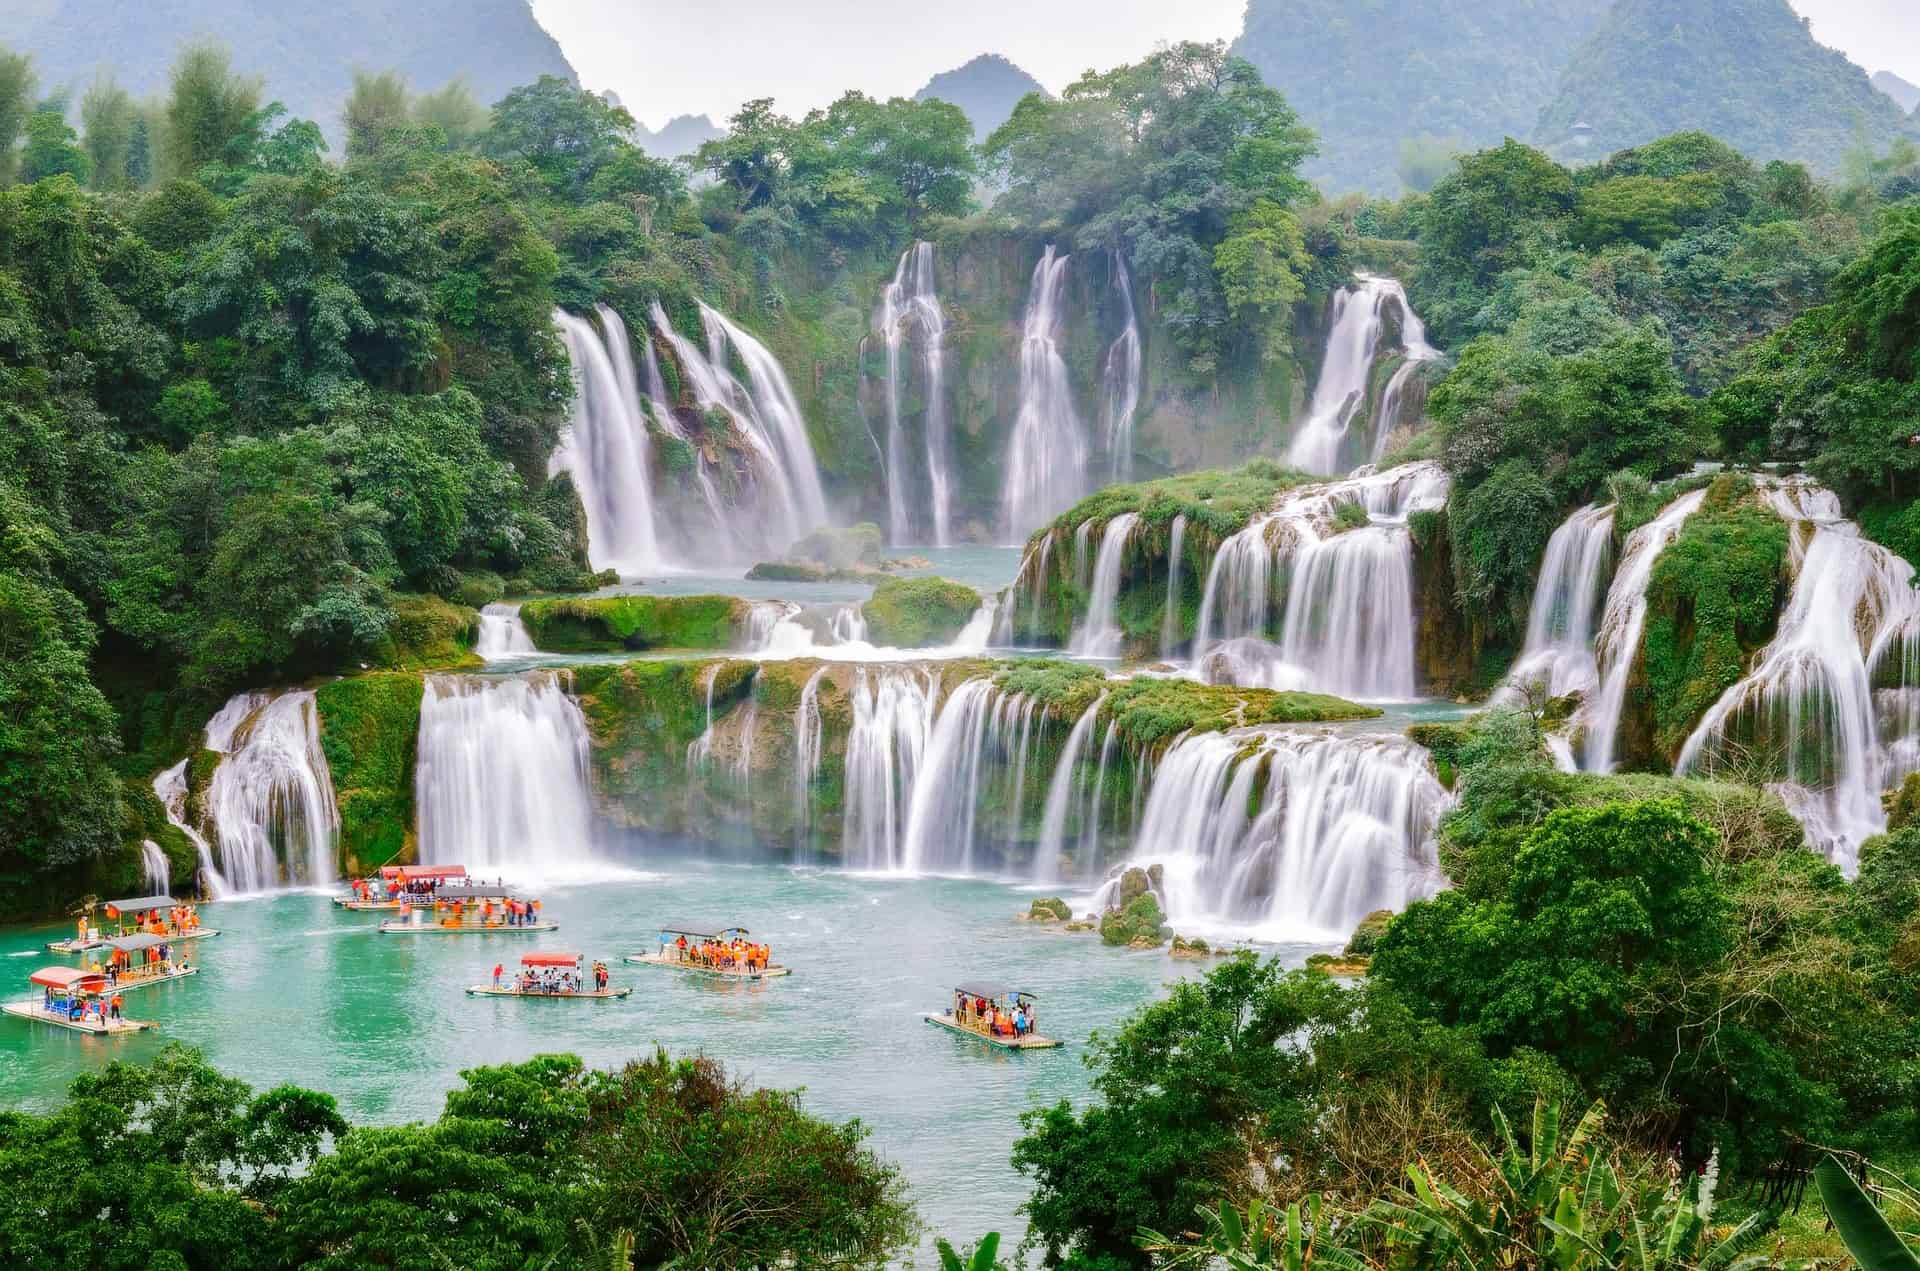 THE 5 DESTINATIONS YOU CANNOT MISS FOR A PERFECT ADVENTURE IN VIETNAM